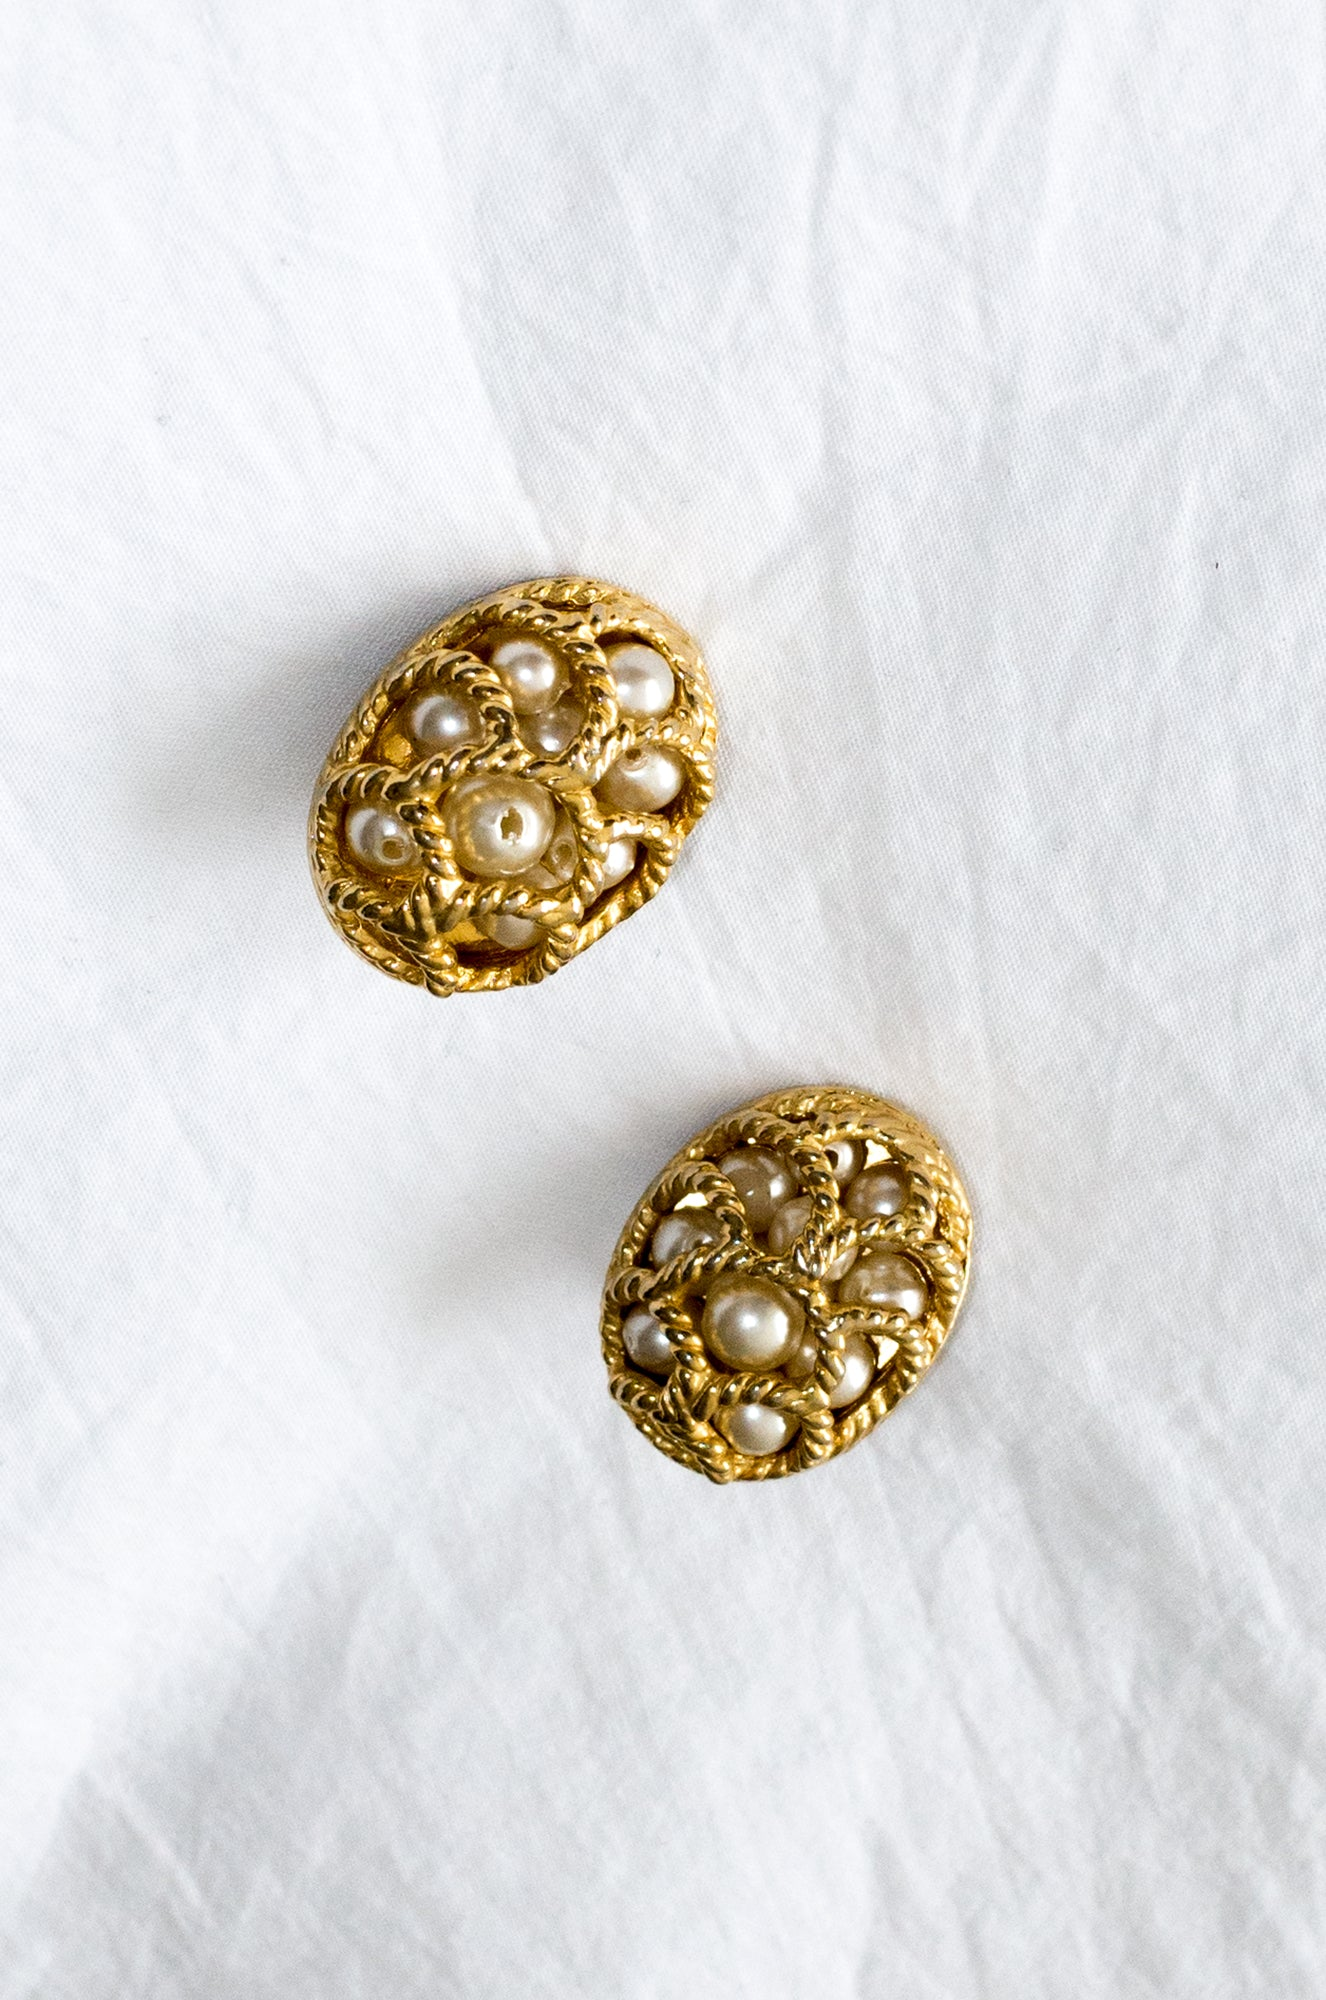 Vintage 1980s gold-tone earrings with plastic pearls